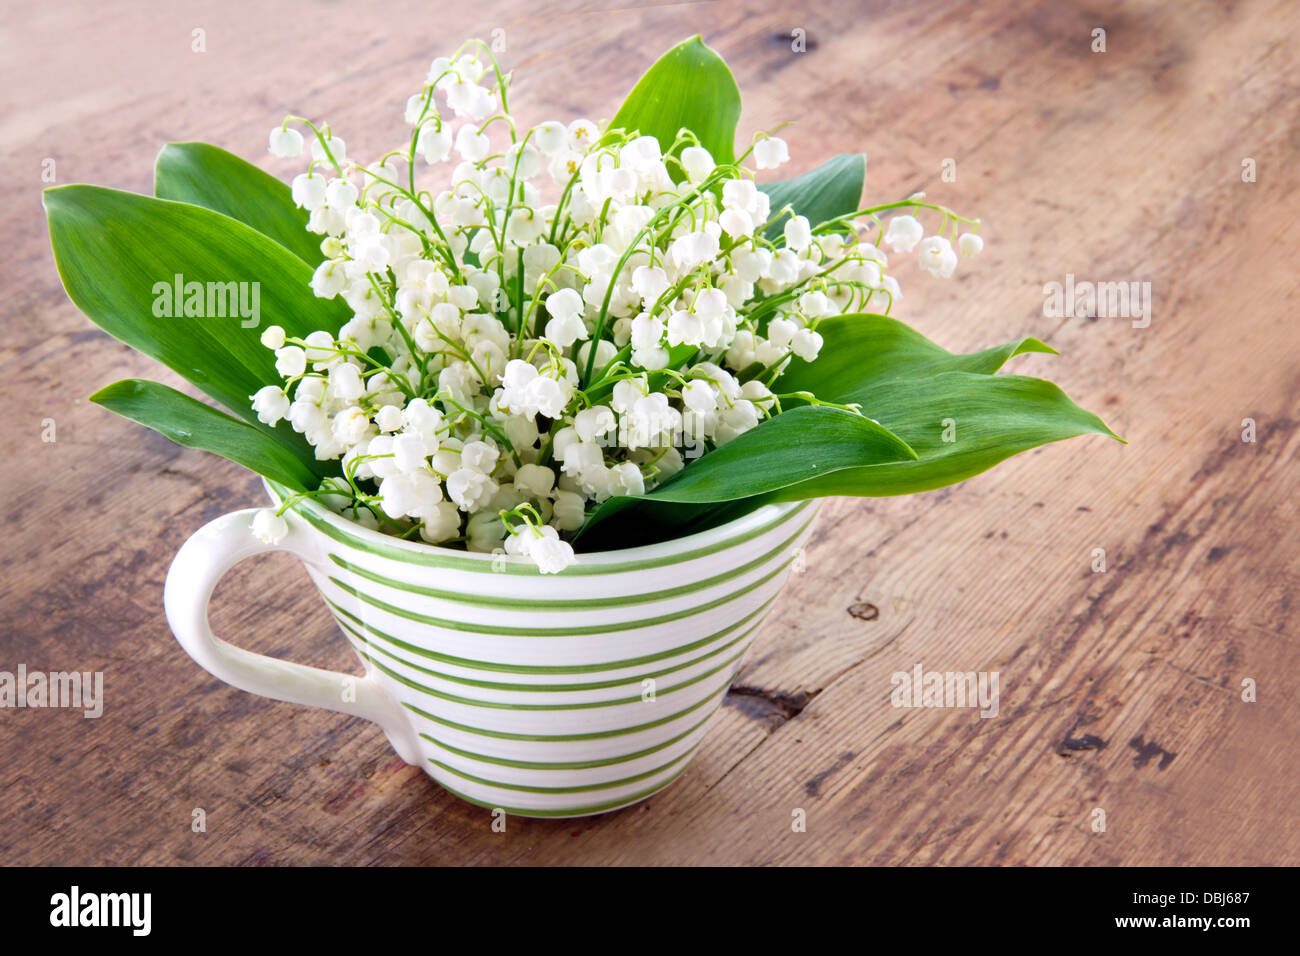 Bouquet Of Lily Of The Valley Spring Flowers In A Green Striped Cup Stock Photo Alamy